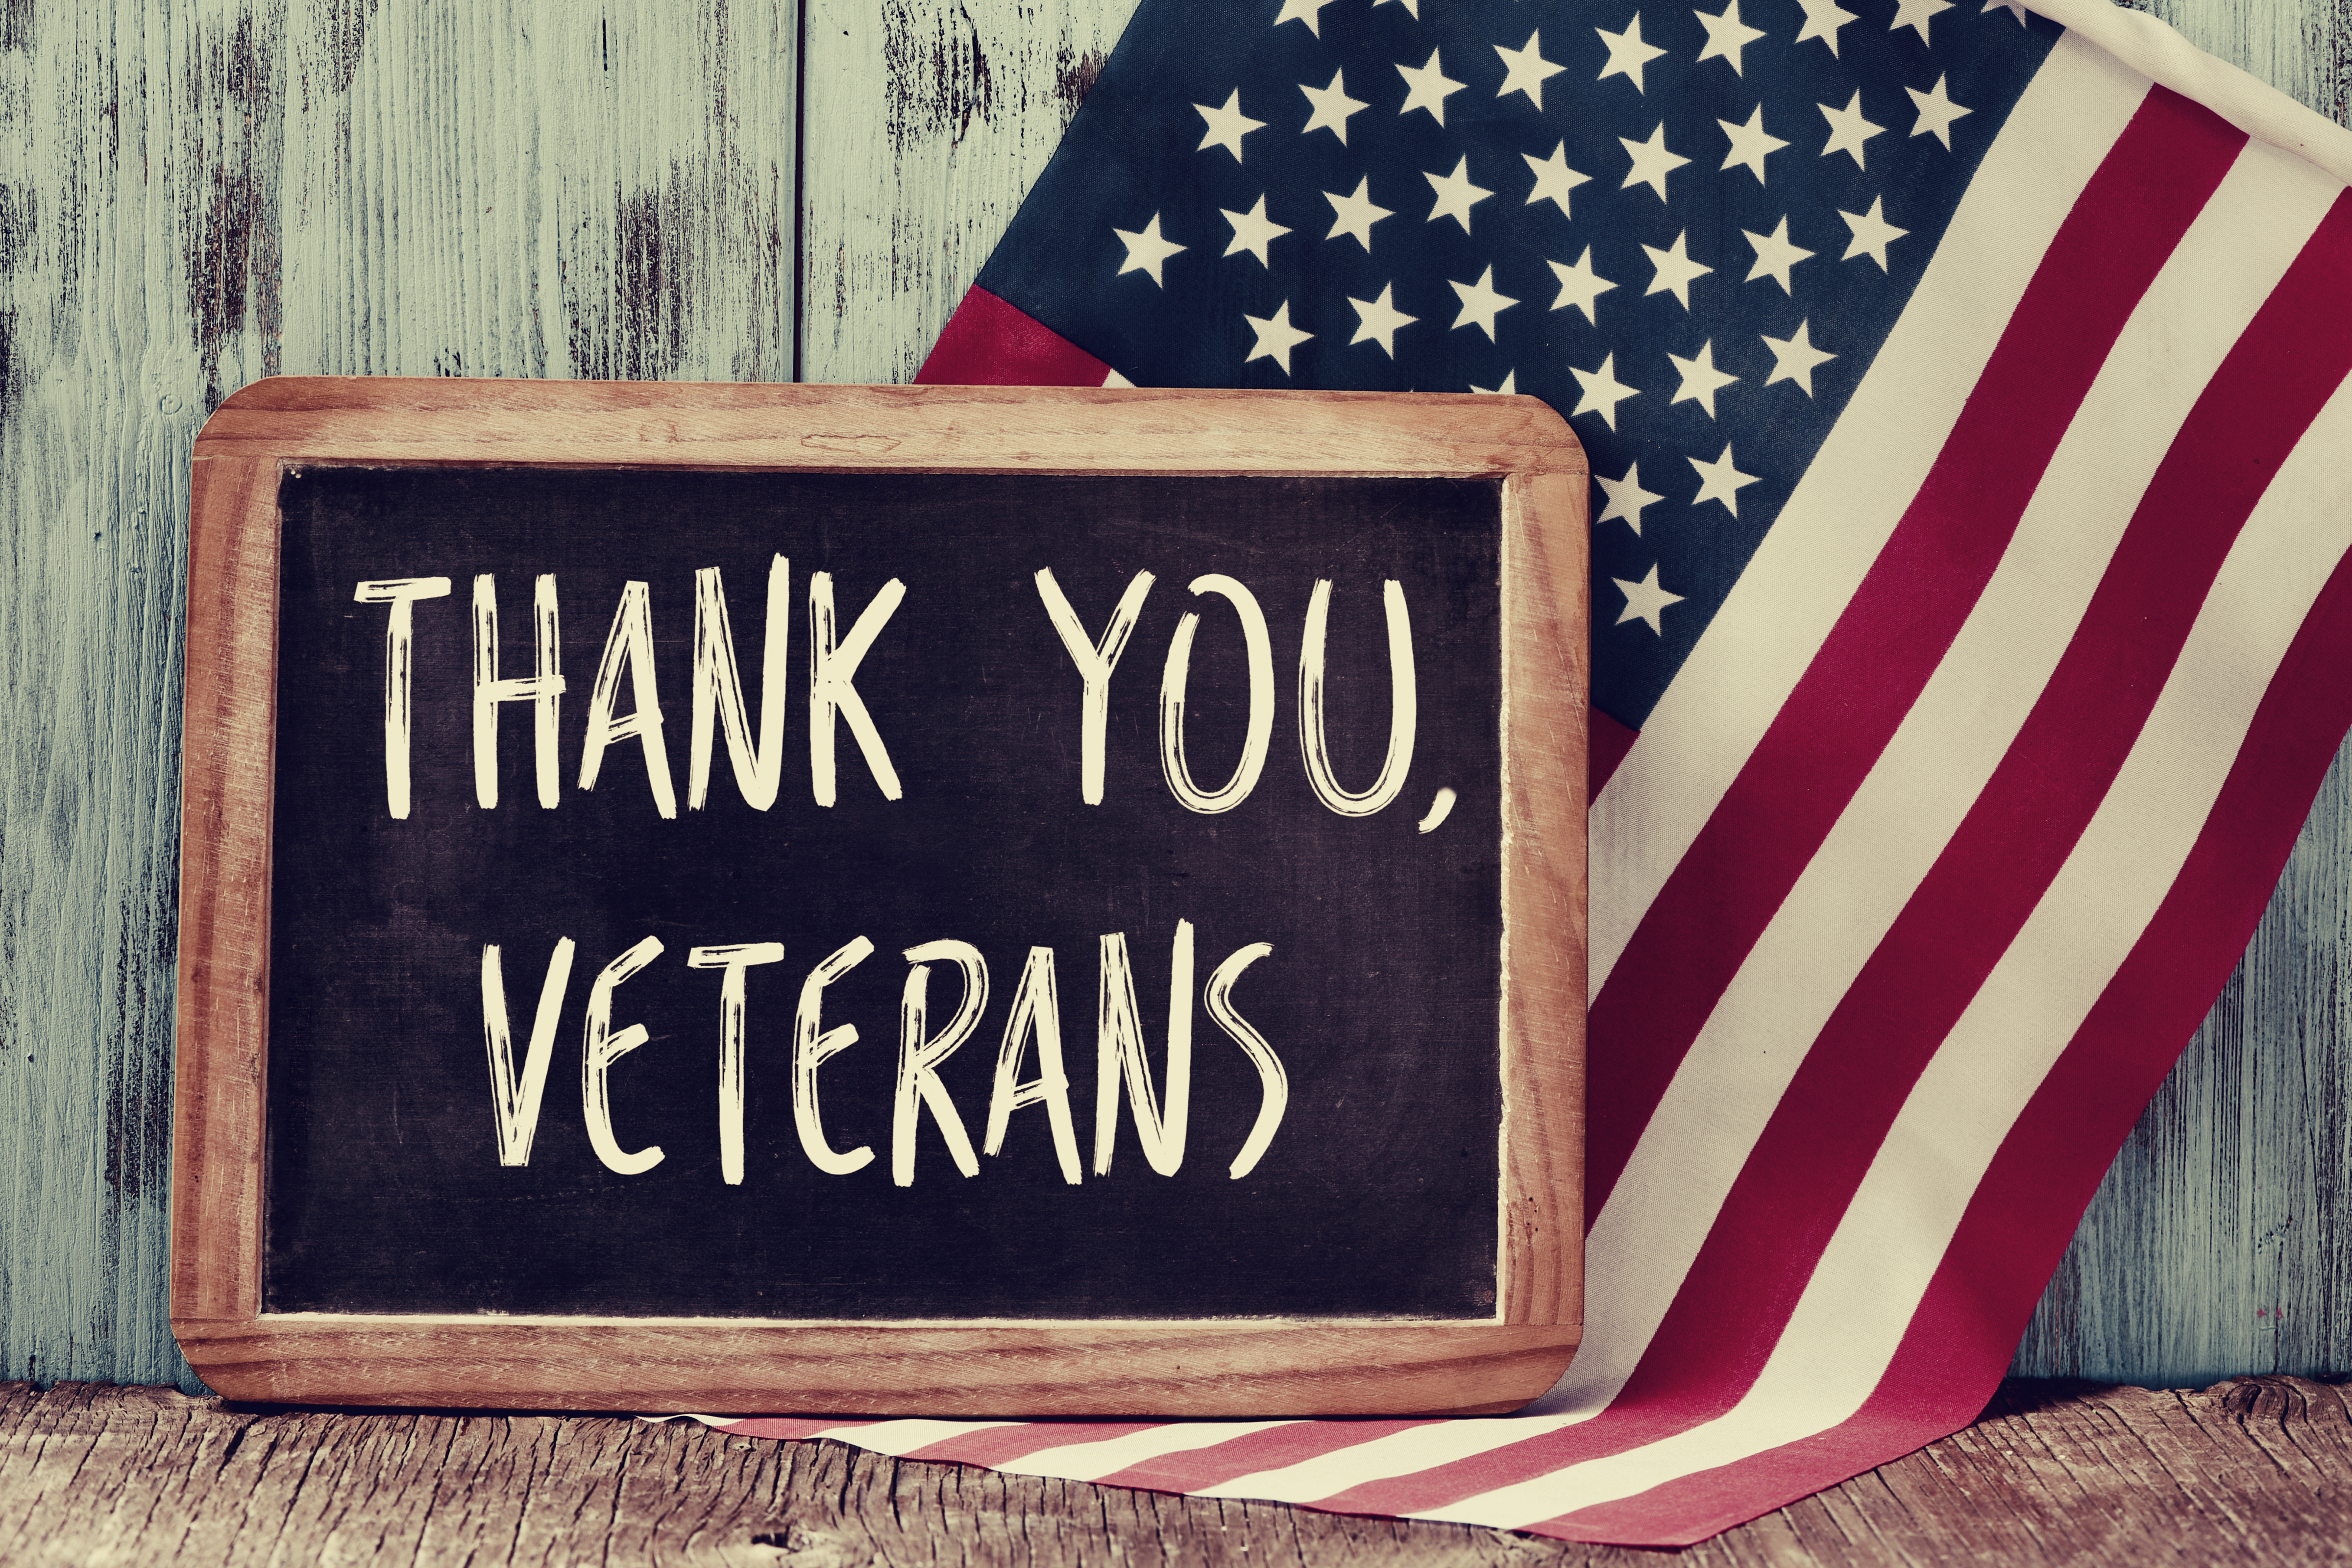 Thank you veterans, from Roco Rescue